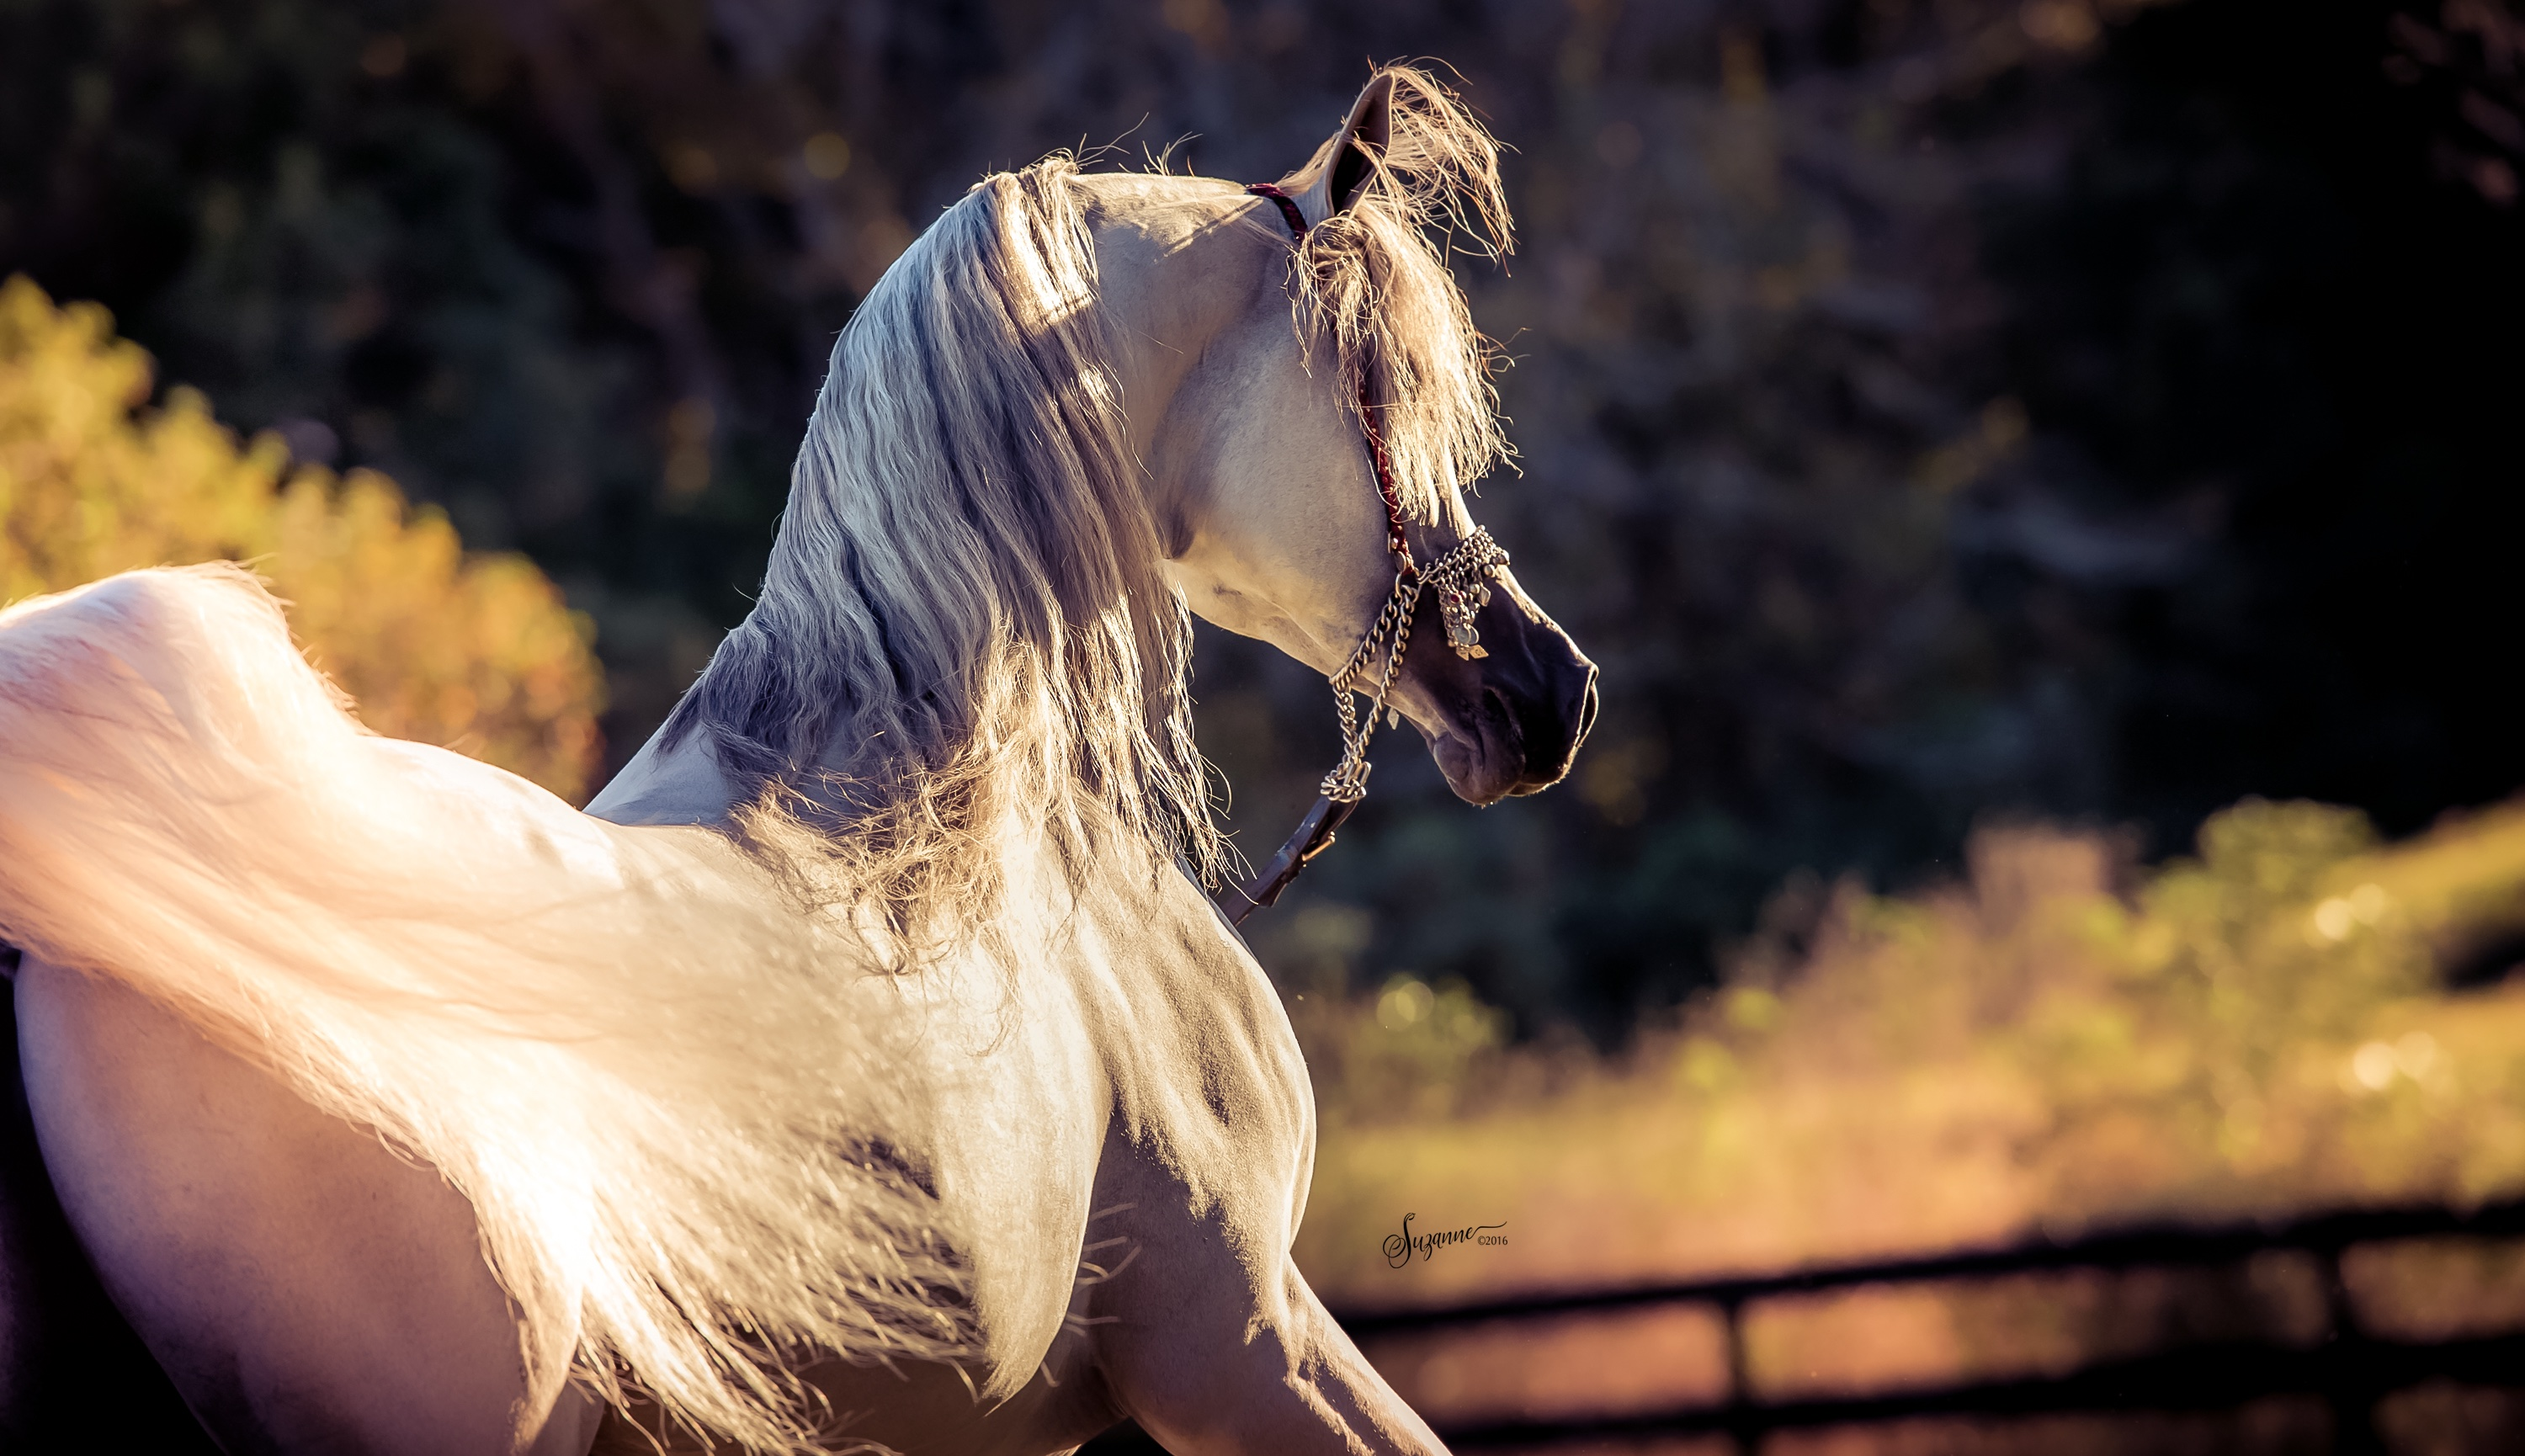 Equine Photography by Suzanne Inc EQUINE PHOTOGRAPHY by